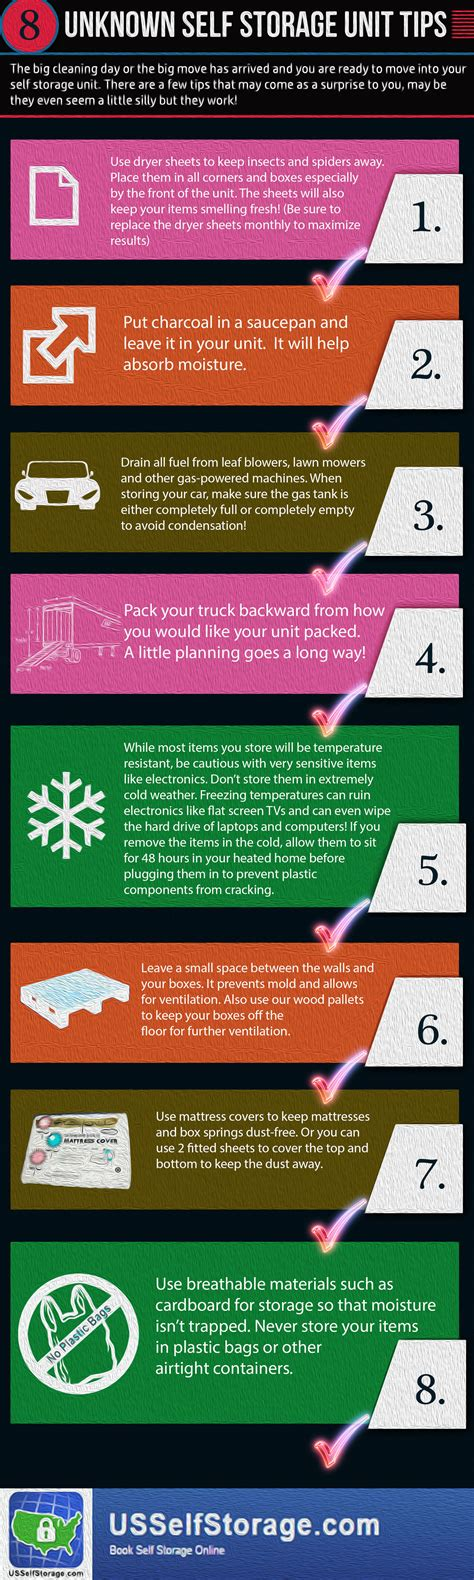 storage tips unknown self storage tips and tricks infographic